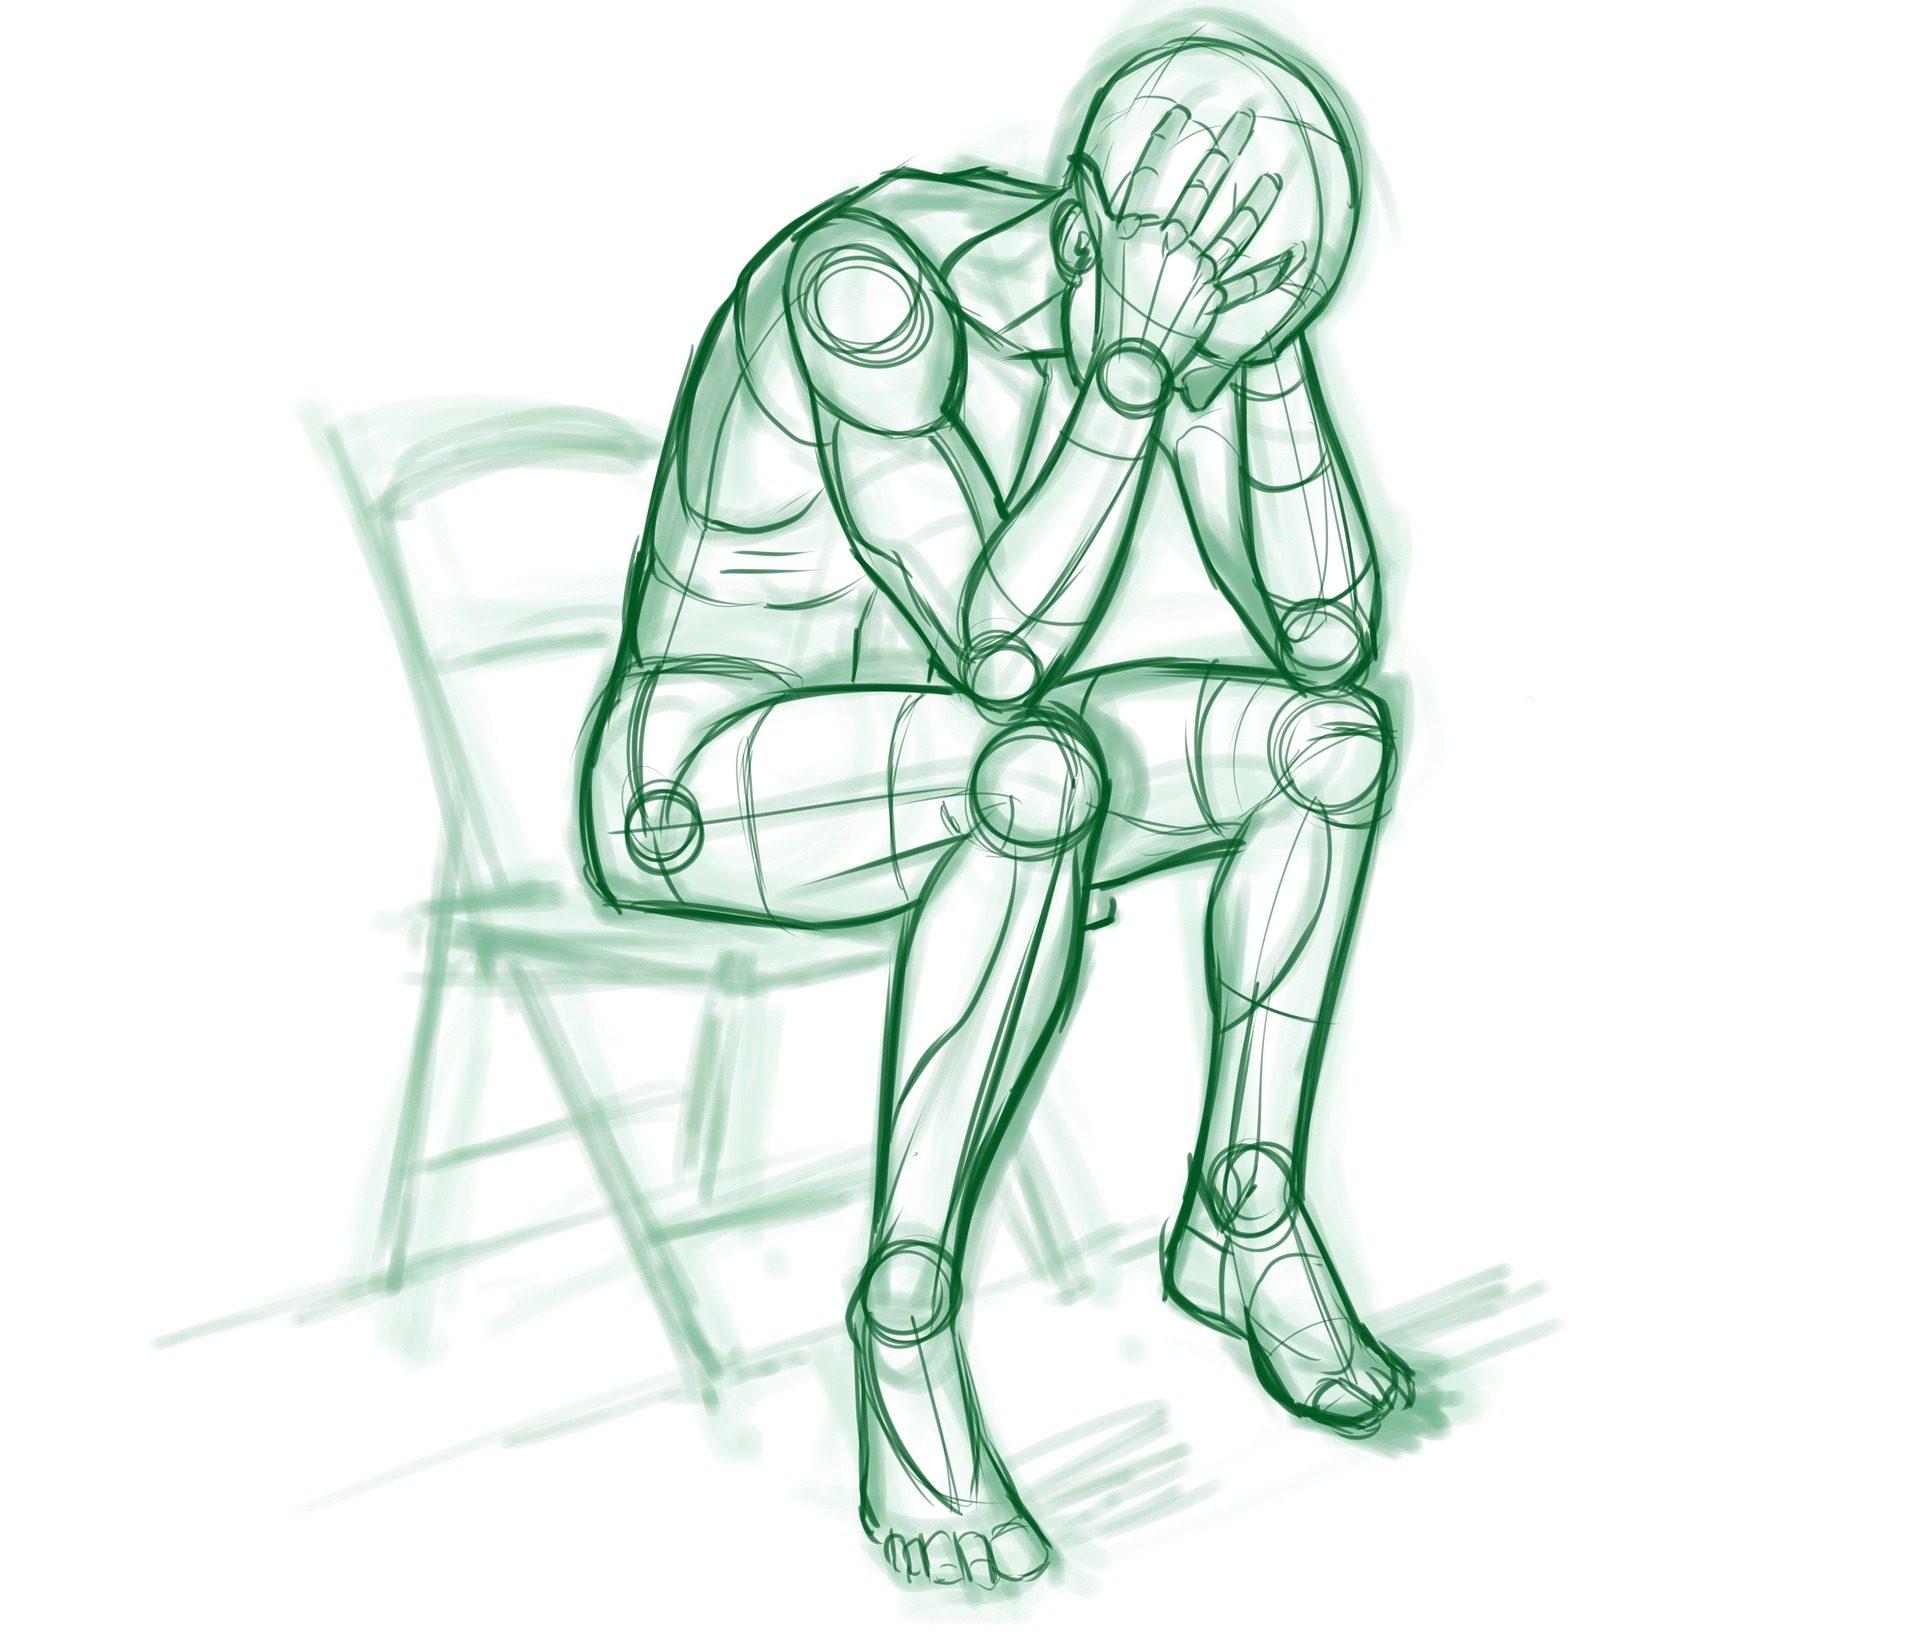 Green drawn outline of person in chair holding head in frustration